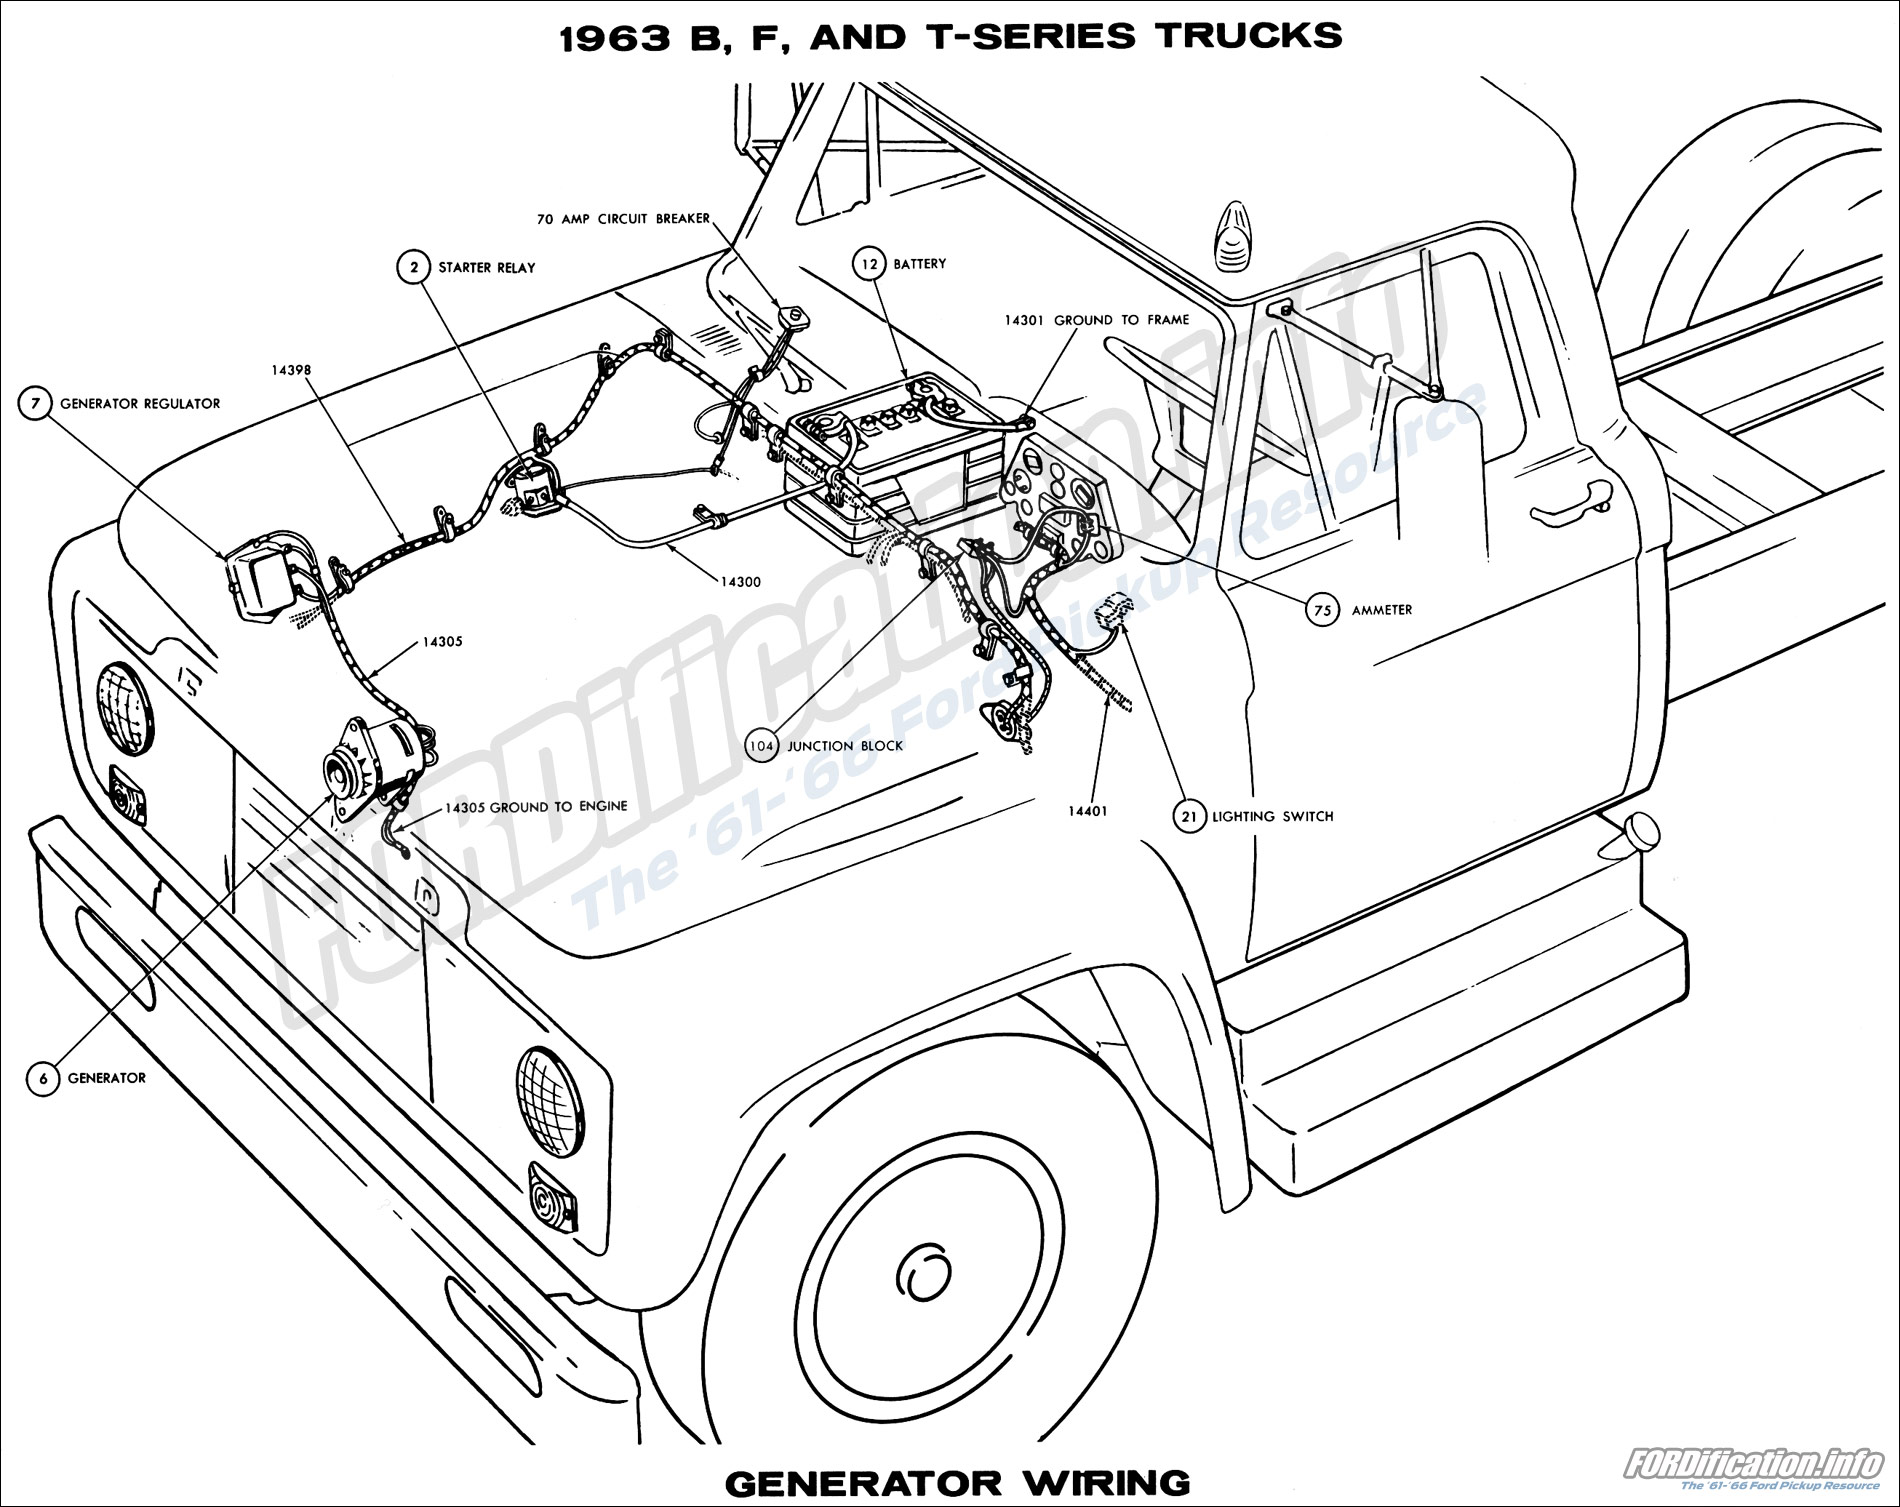 1963 b, f, and t-series trucks generator wiring